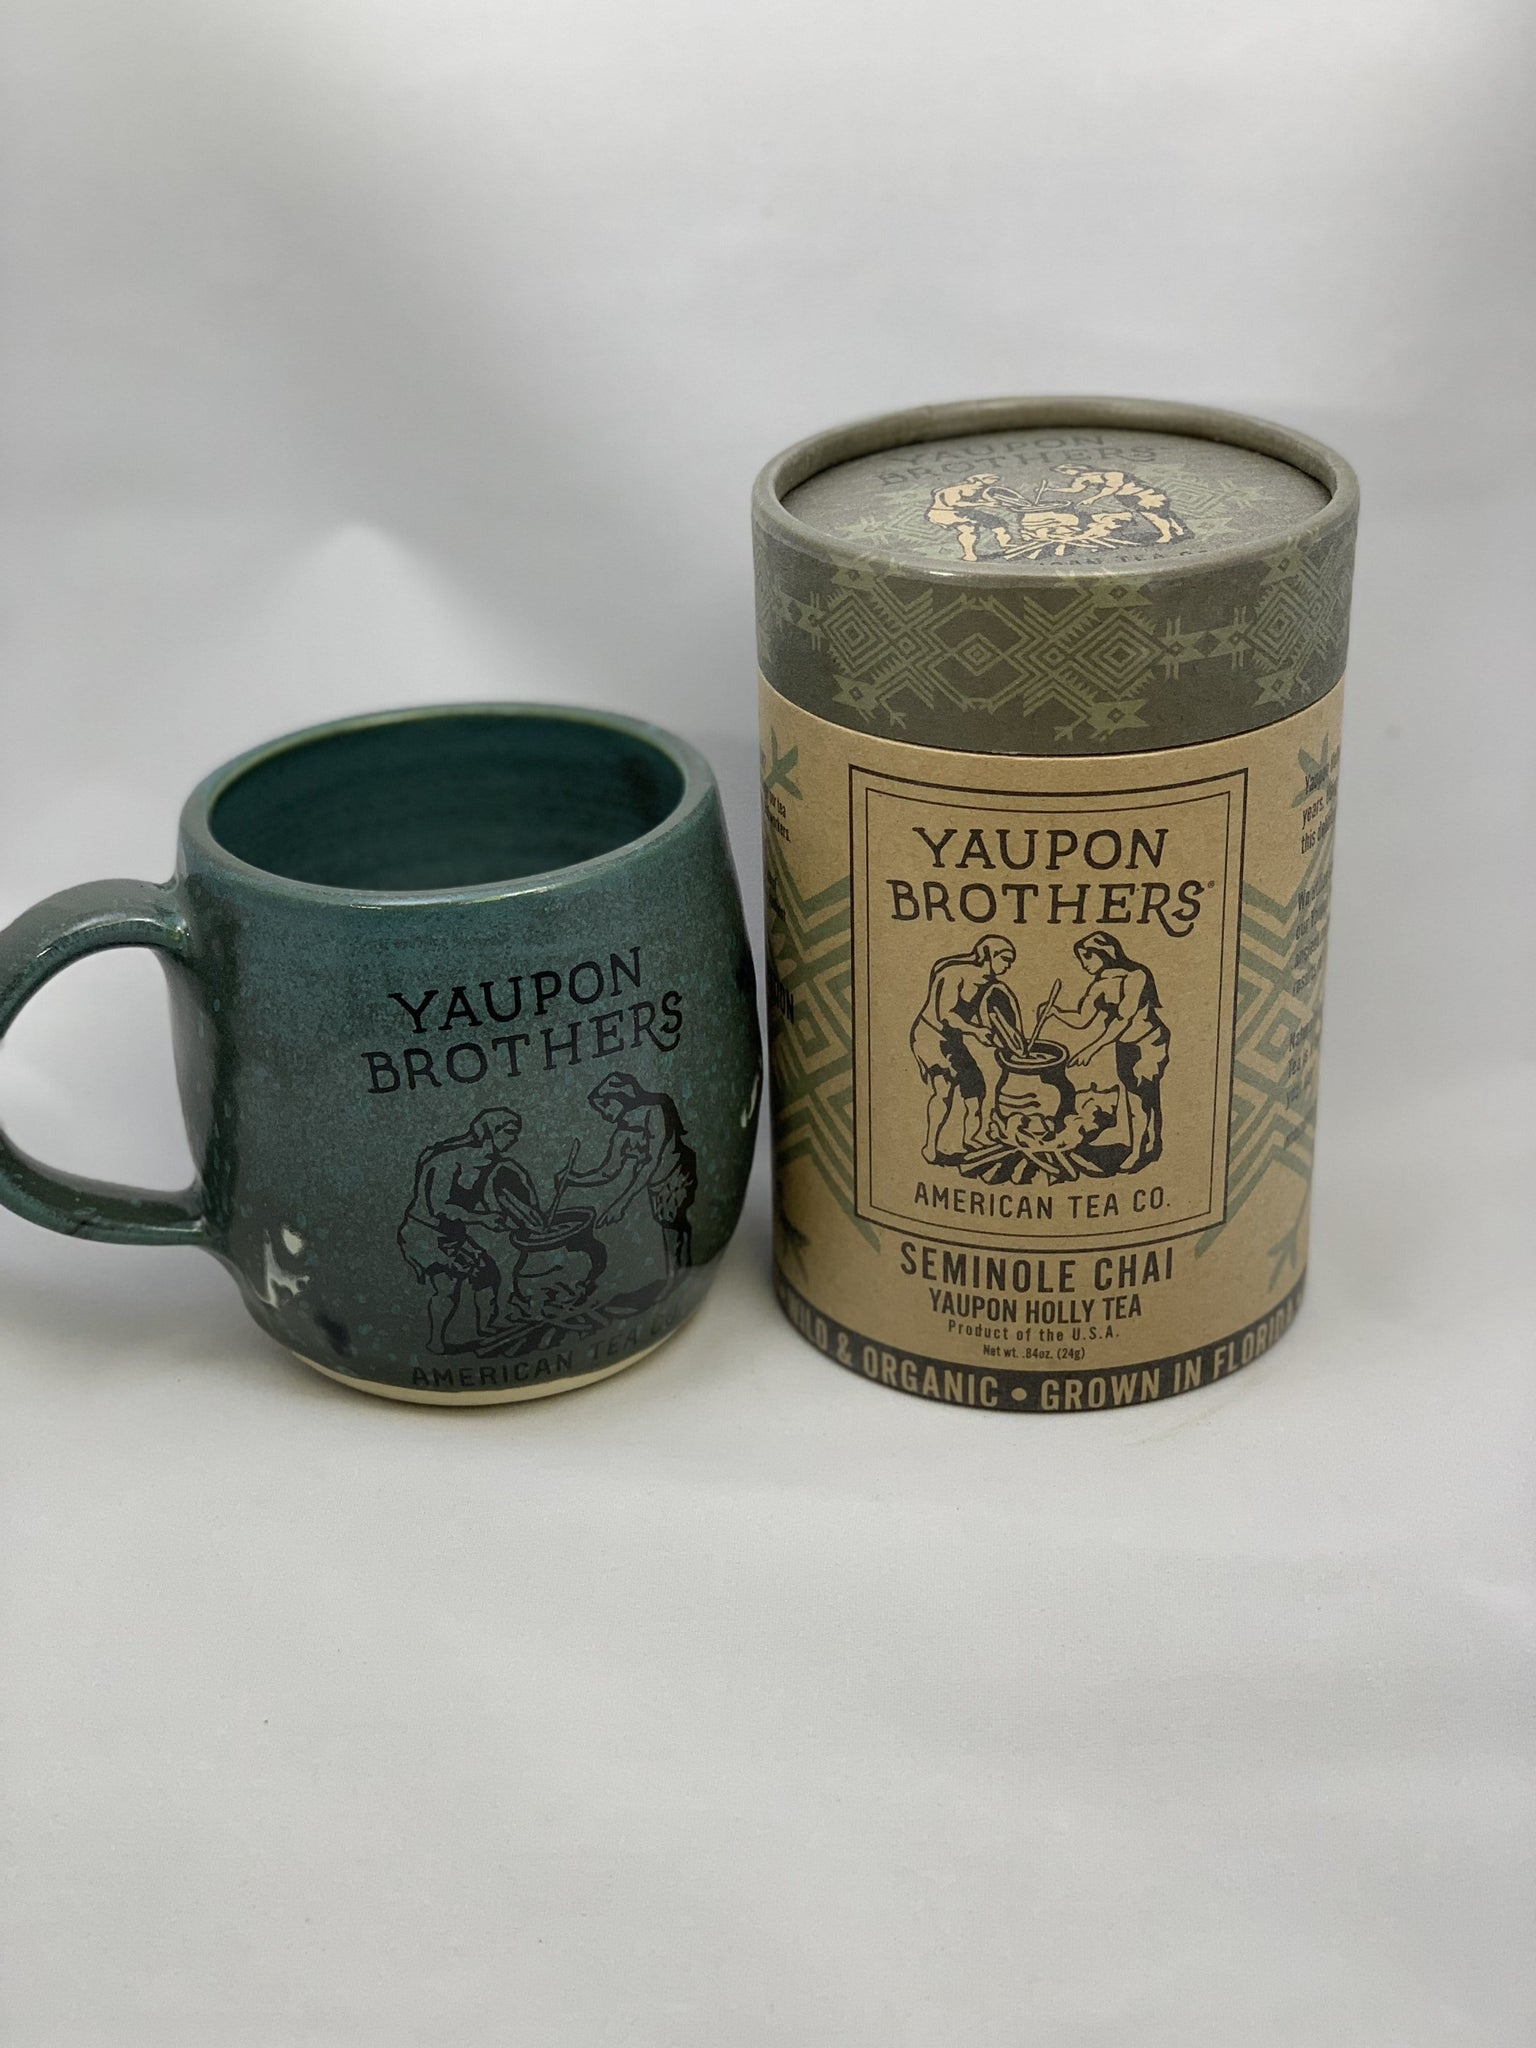 Mug/Eco-Tube Combo - Yaupon Brothers American Tea Co.